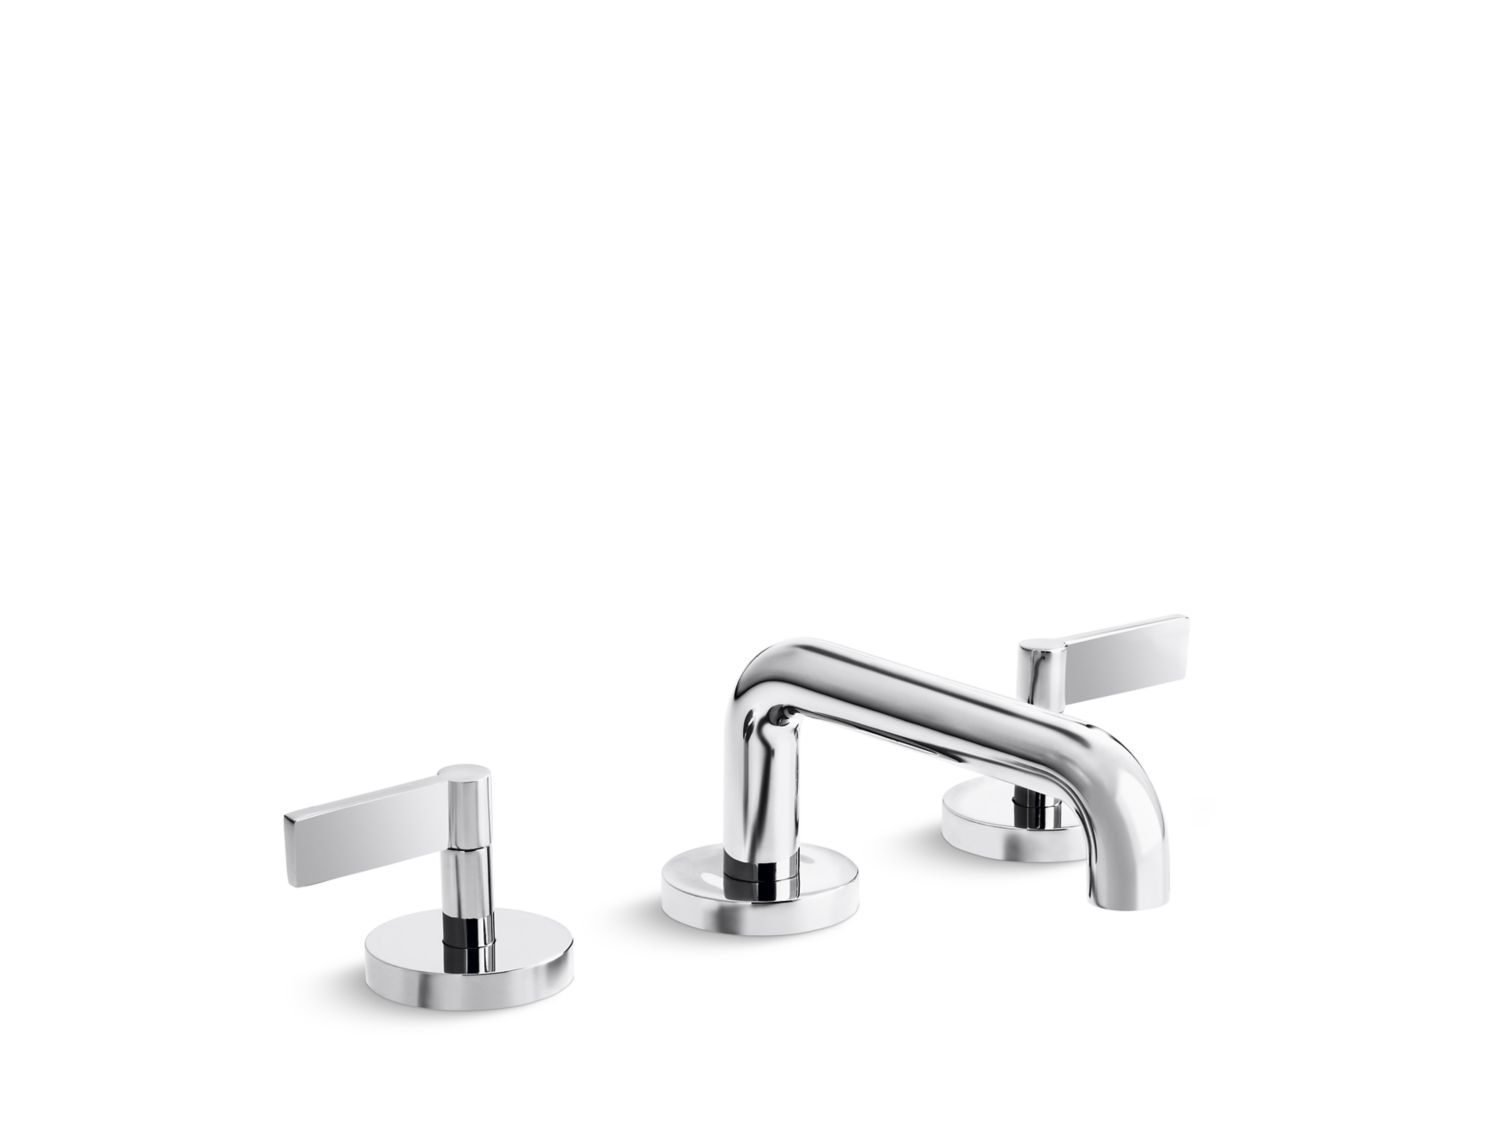 One Sink Faucet, Low-Spout, Lever Handles | P24491-LV | Faucets ...